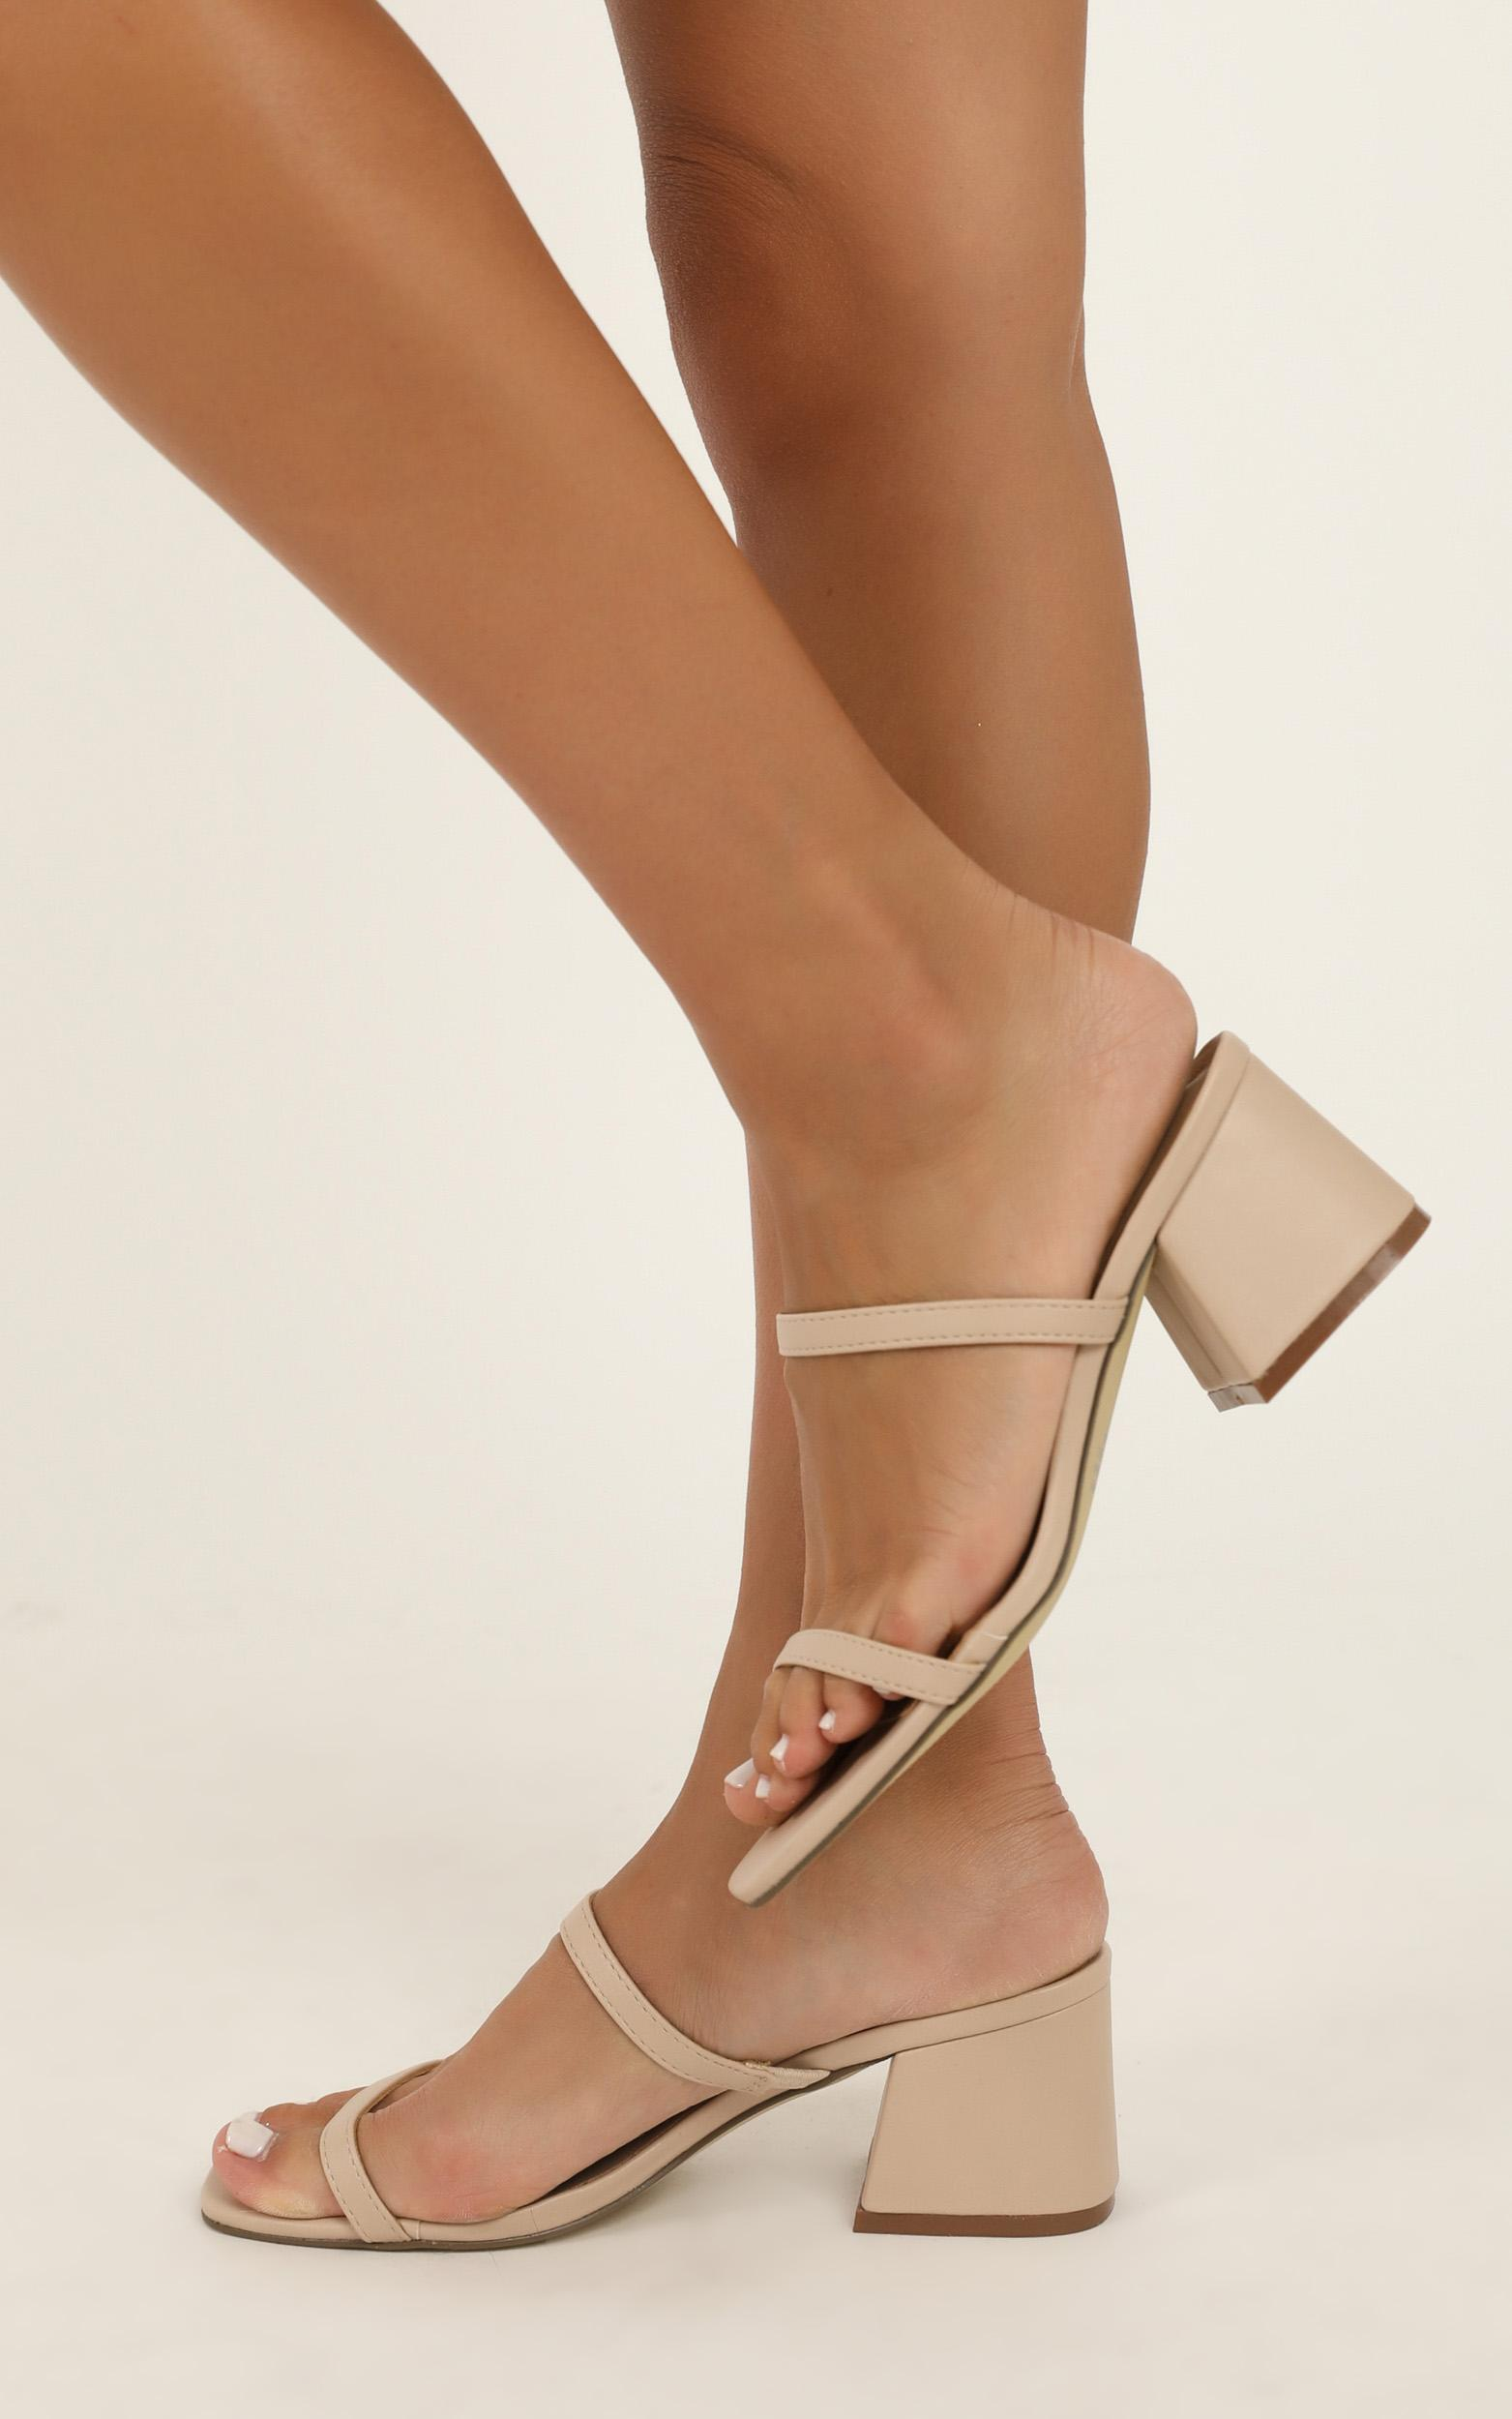 Therapy - Goldie Heels in nude - 10, Beige, hi-res image number null